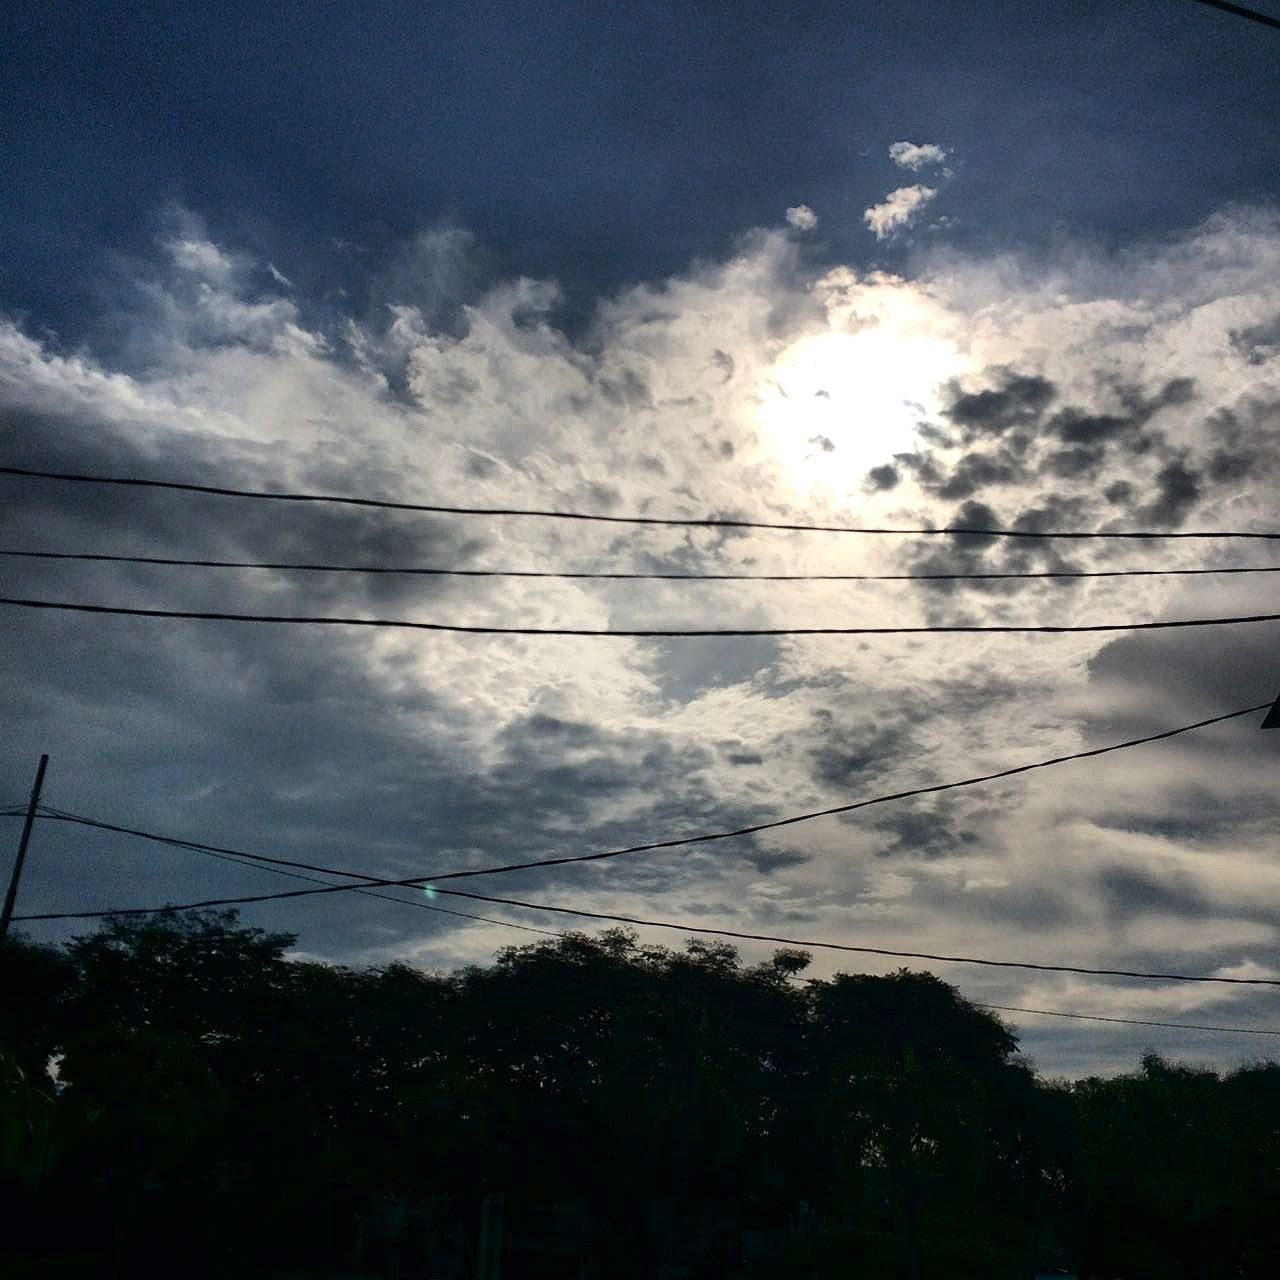 🌇☀🌞 My Year My View Electricity  Power Supply Cable Power Line  Cloud - Sky Silhouette Dramatic Sky Outdoors Tree Nature IPhone IPhoneography Iphonesia Iphonephotography EyeEm Eyeemphoto People Peoplewatching